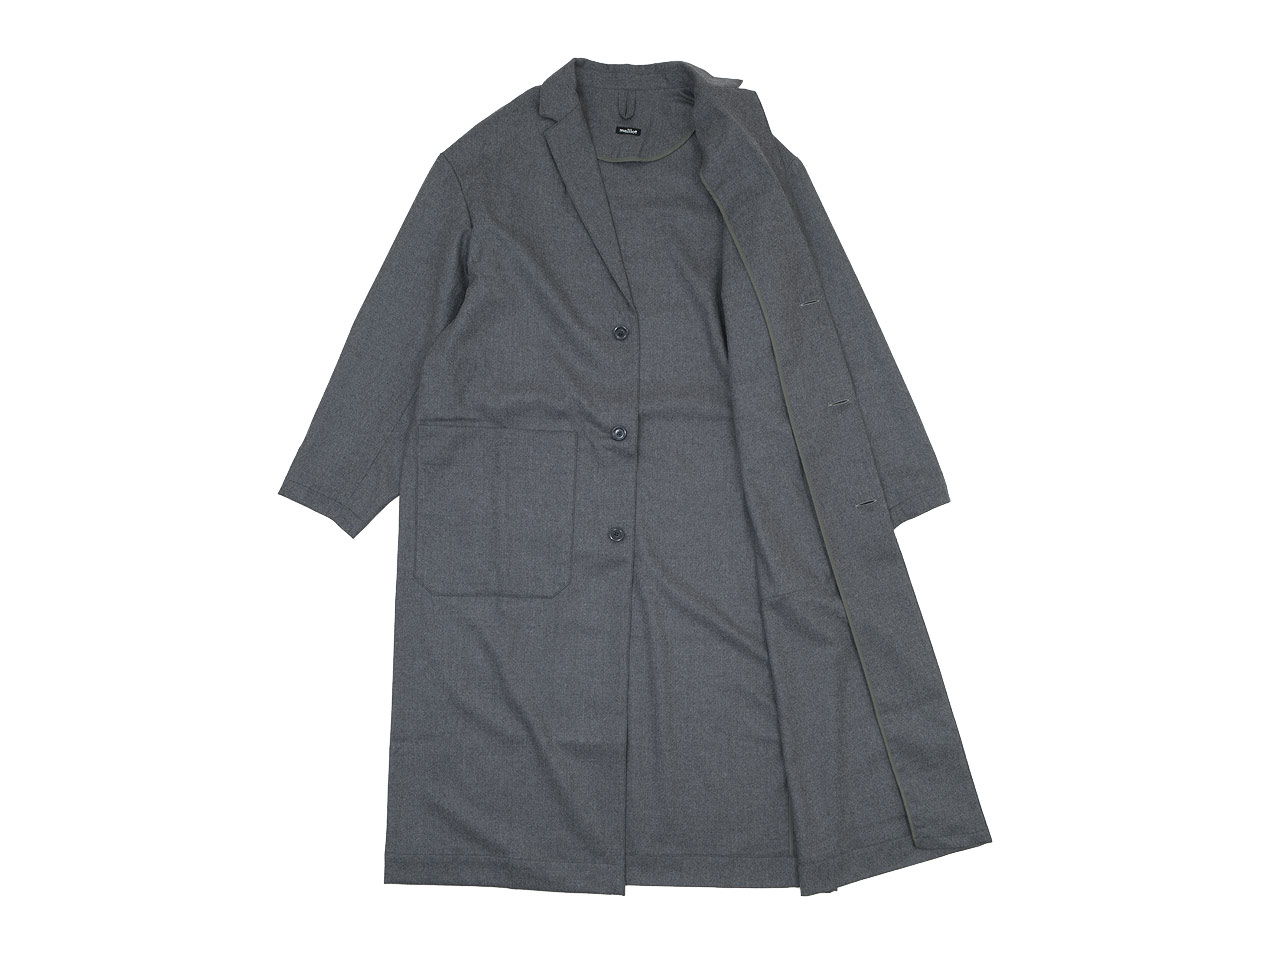 maillot mature wool labo coat